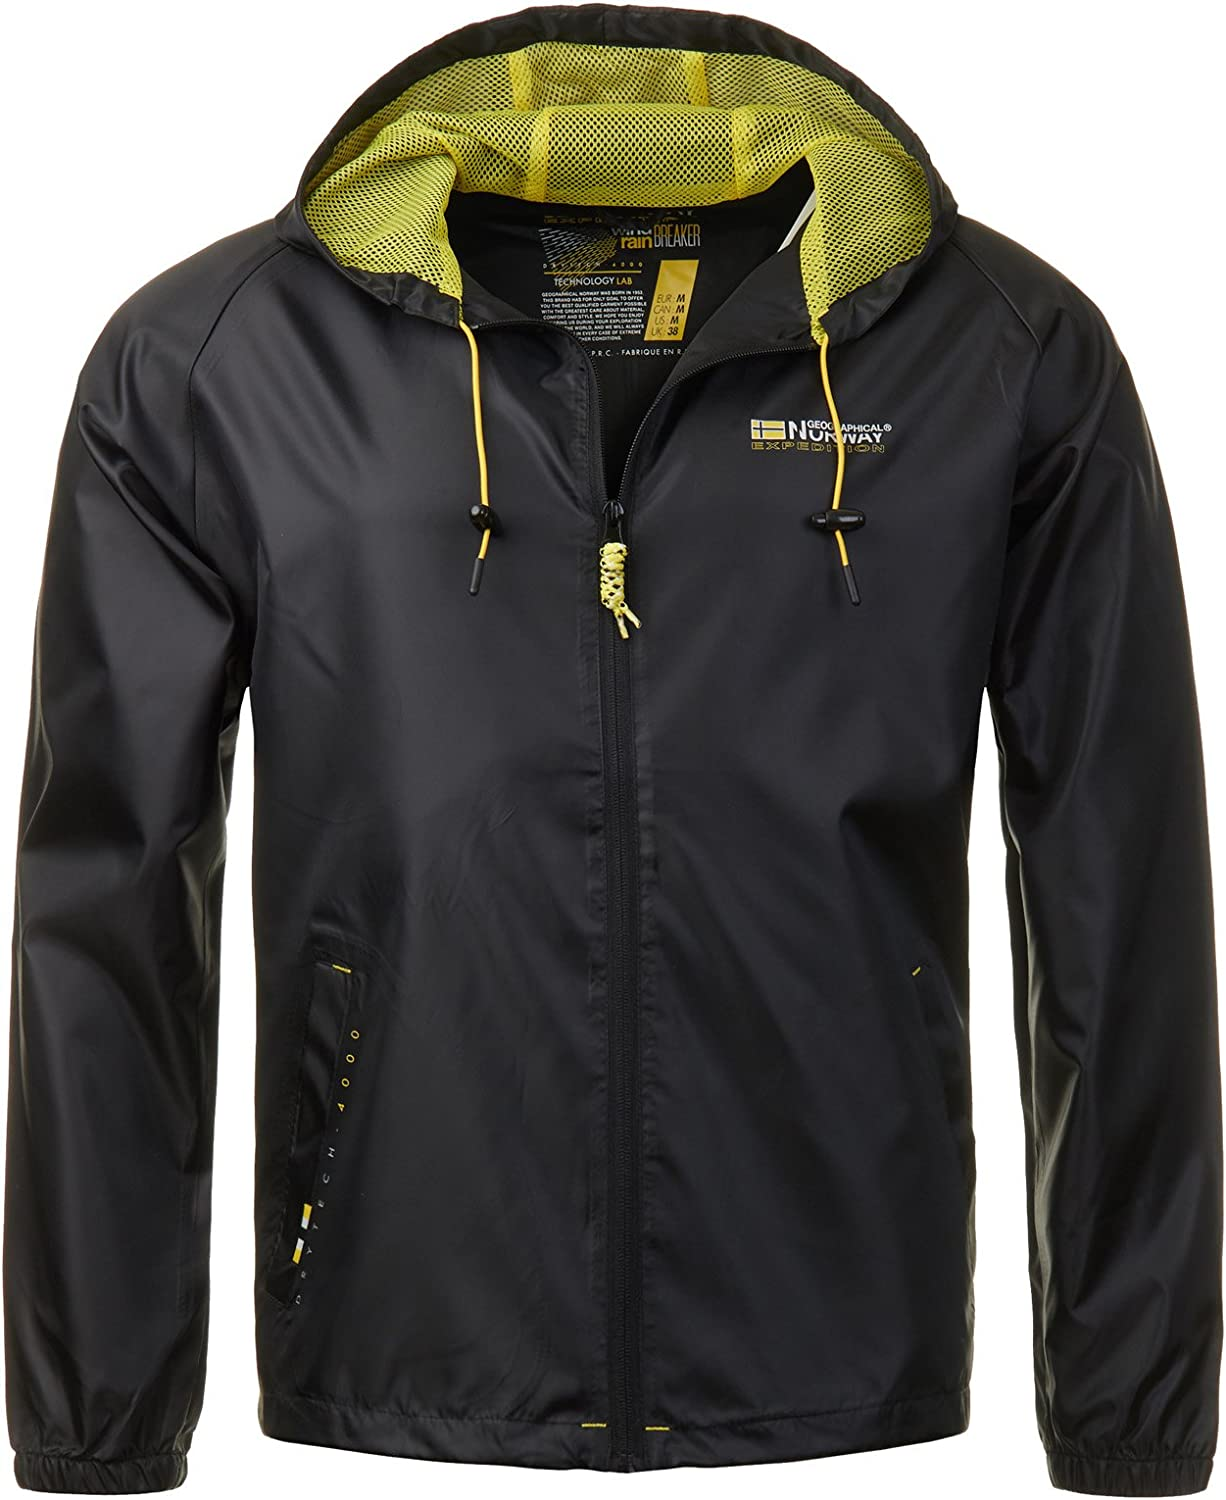 Geographical Norway Giacca da Uomo uebergangs Wind Breaker Outdoor Giacca a Vento